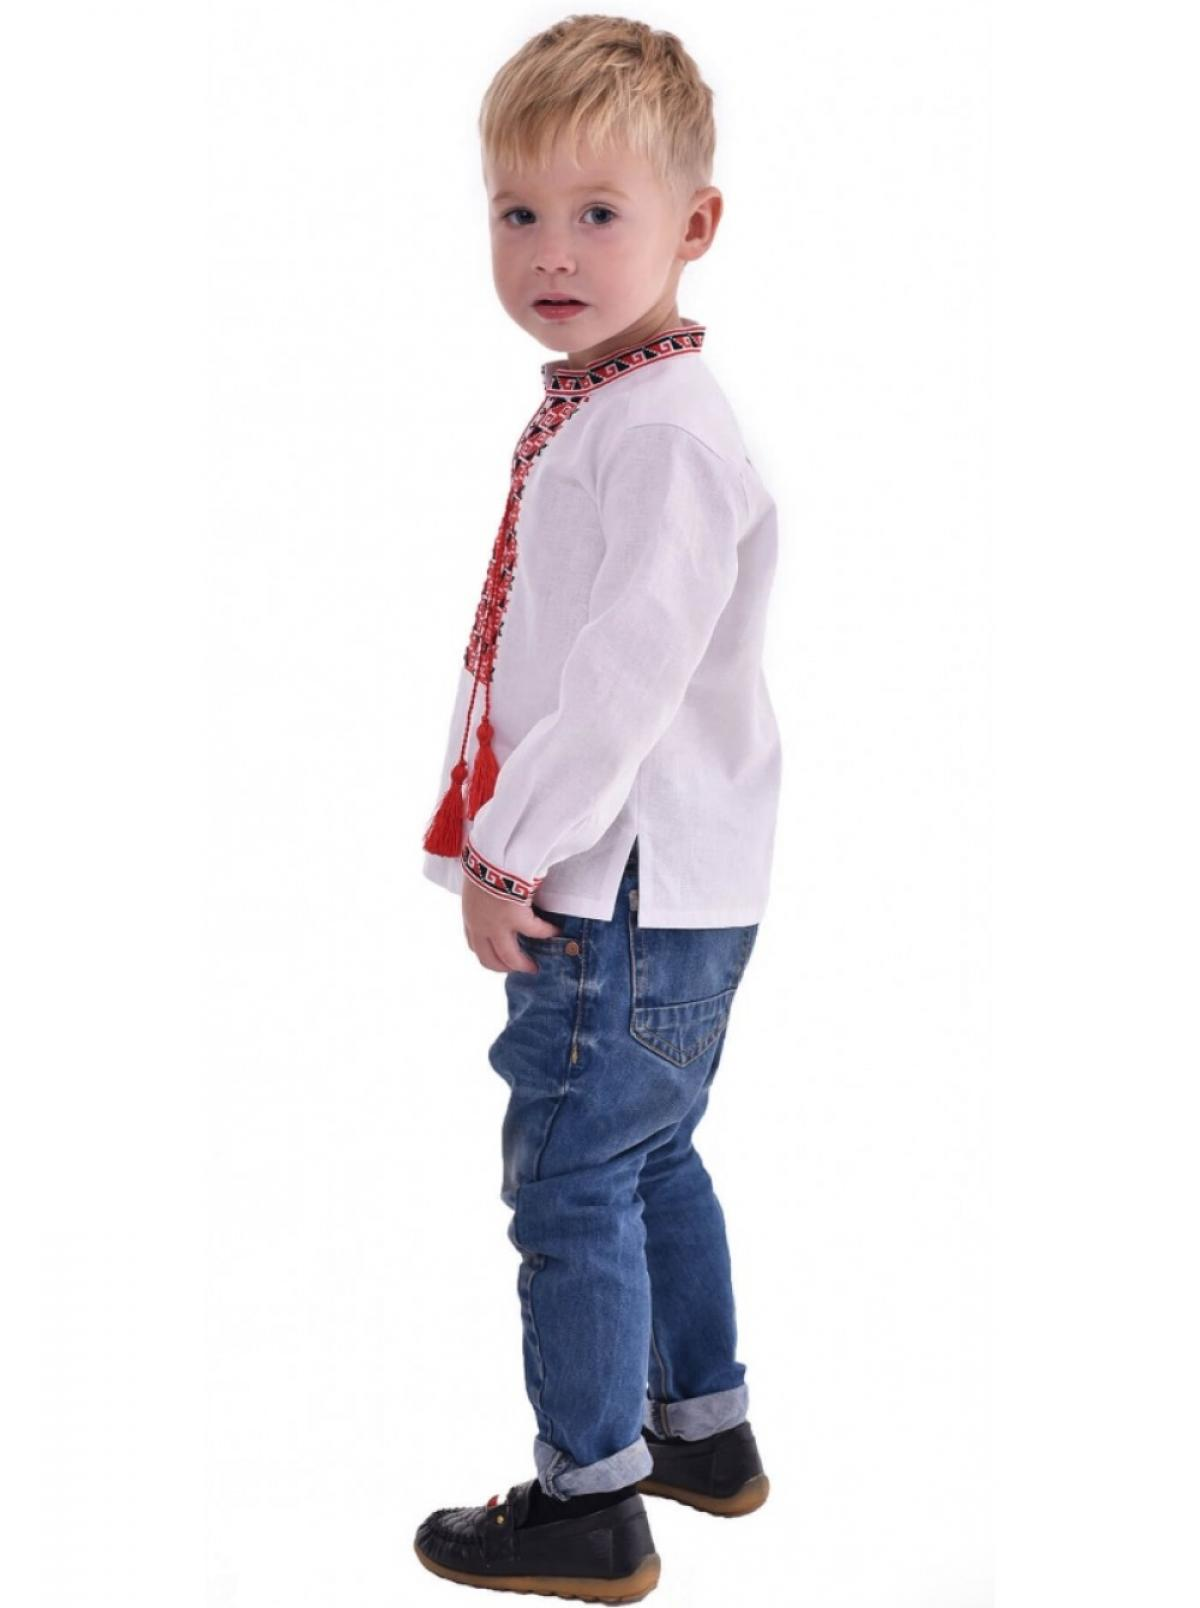 Embroidery for the boy, embroidered with red and black threads. Photo №3. | Narodnyi dim Ukraine